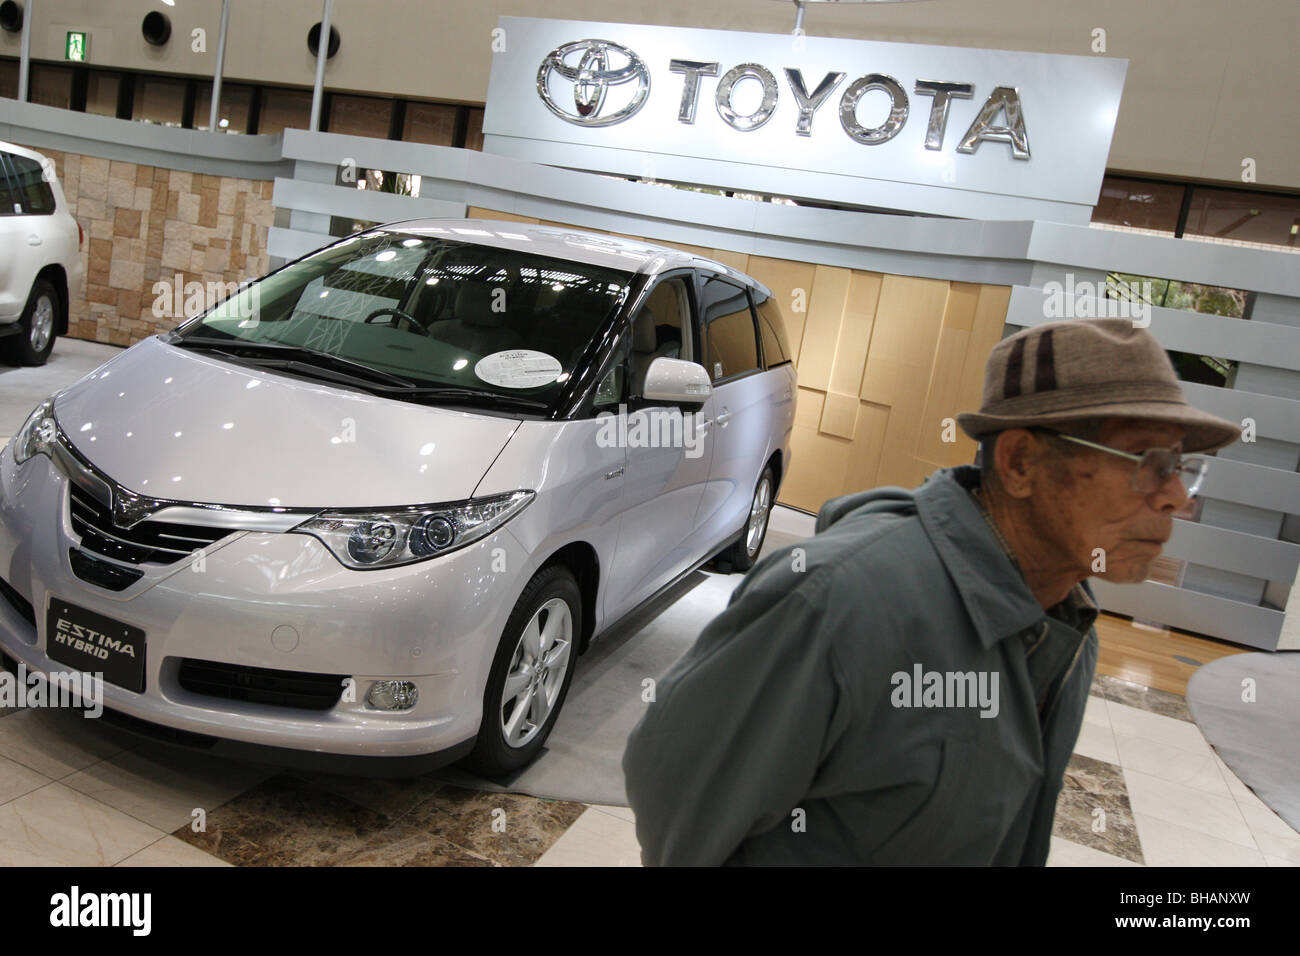 Stock photo toyota vehicles on show at the toyota hall toyota city japan monday january 28th 2008